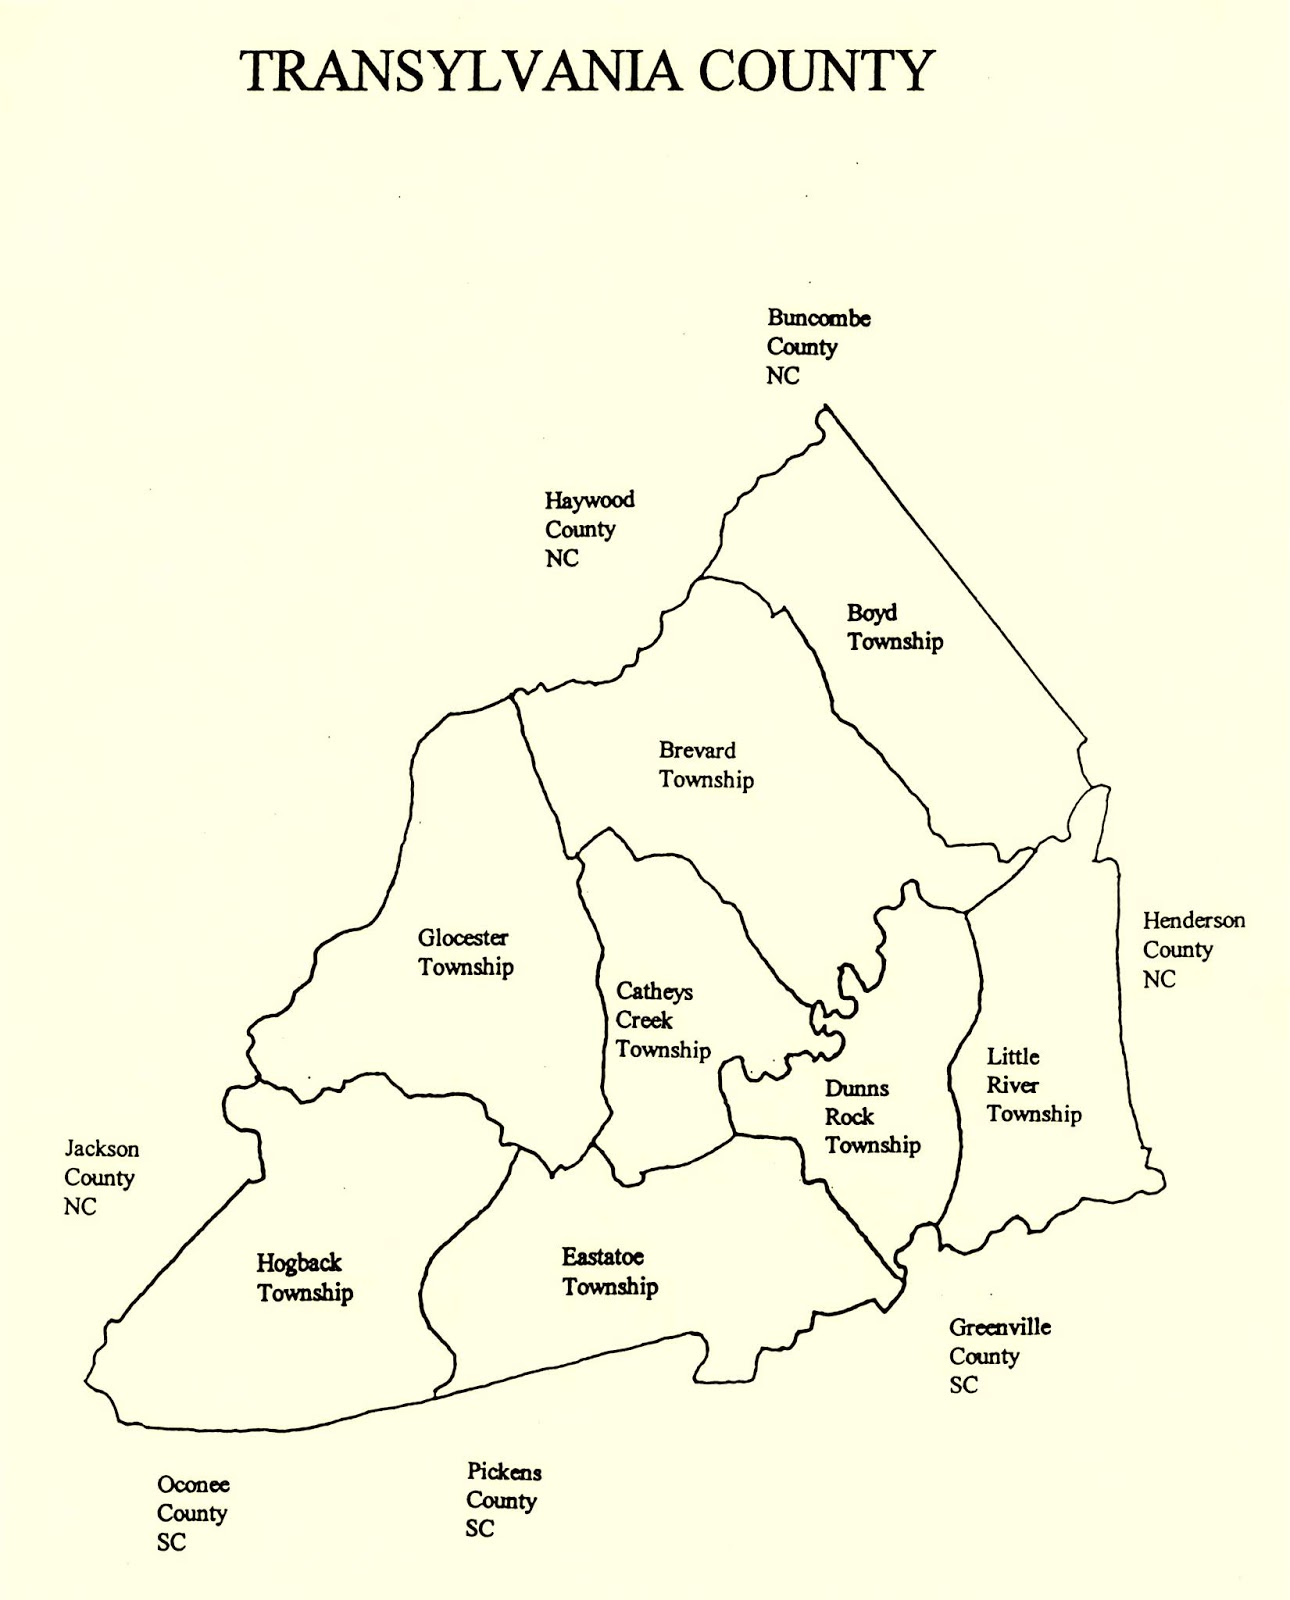 Haywood County Nc Map.The Rowell Bosse North Carolina Room Key Role The Township Plays In